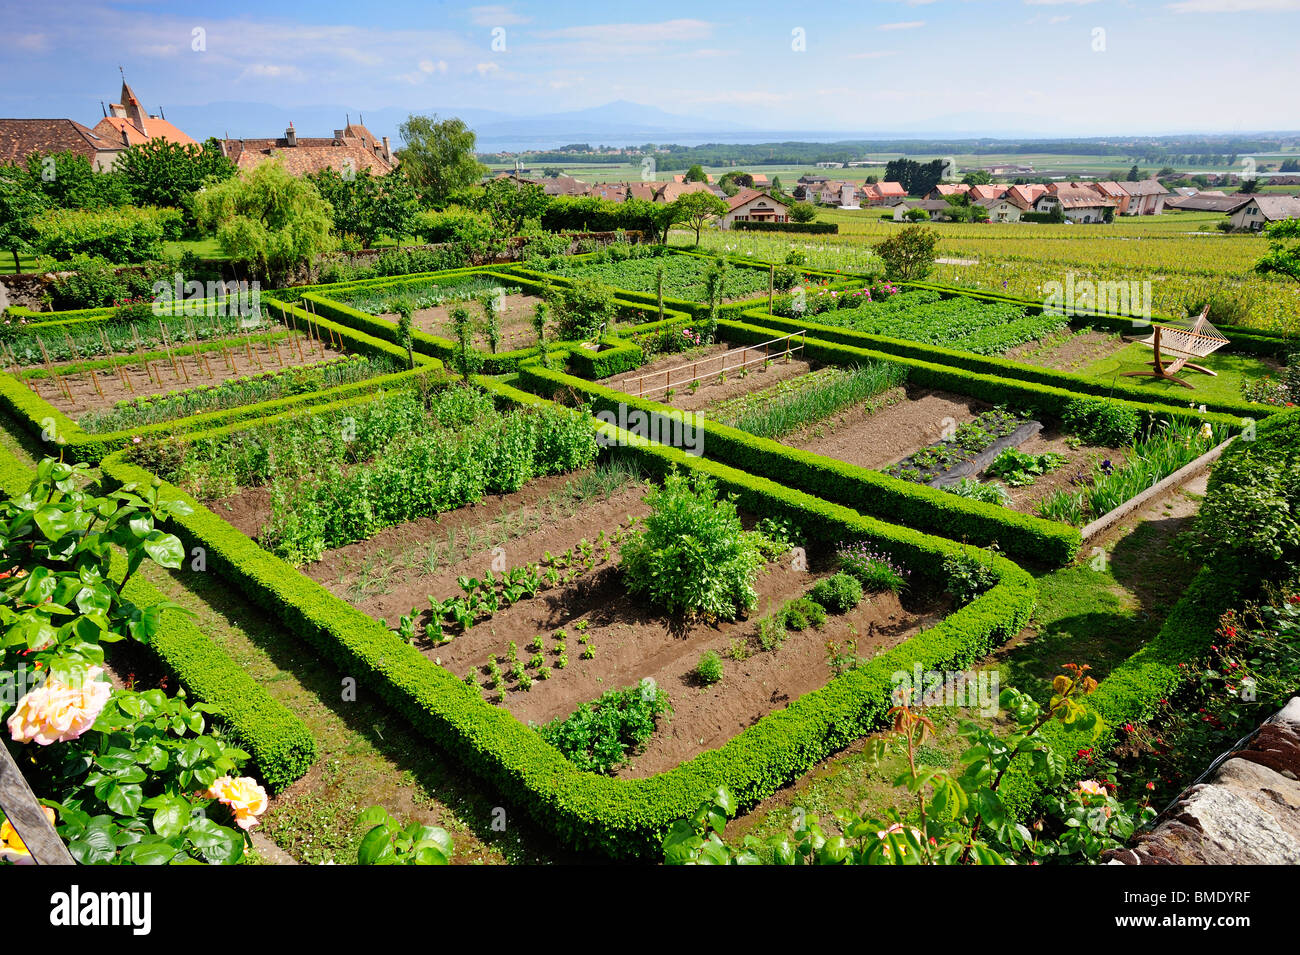 A Swiss kitchen garden in the wine-growing region called La Cote. The garden is neat and orderly - Stock Image